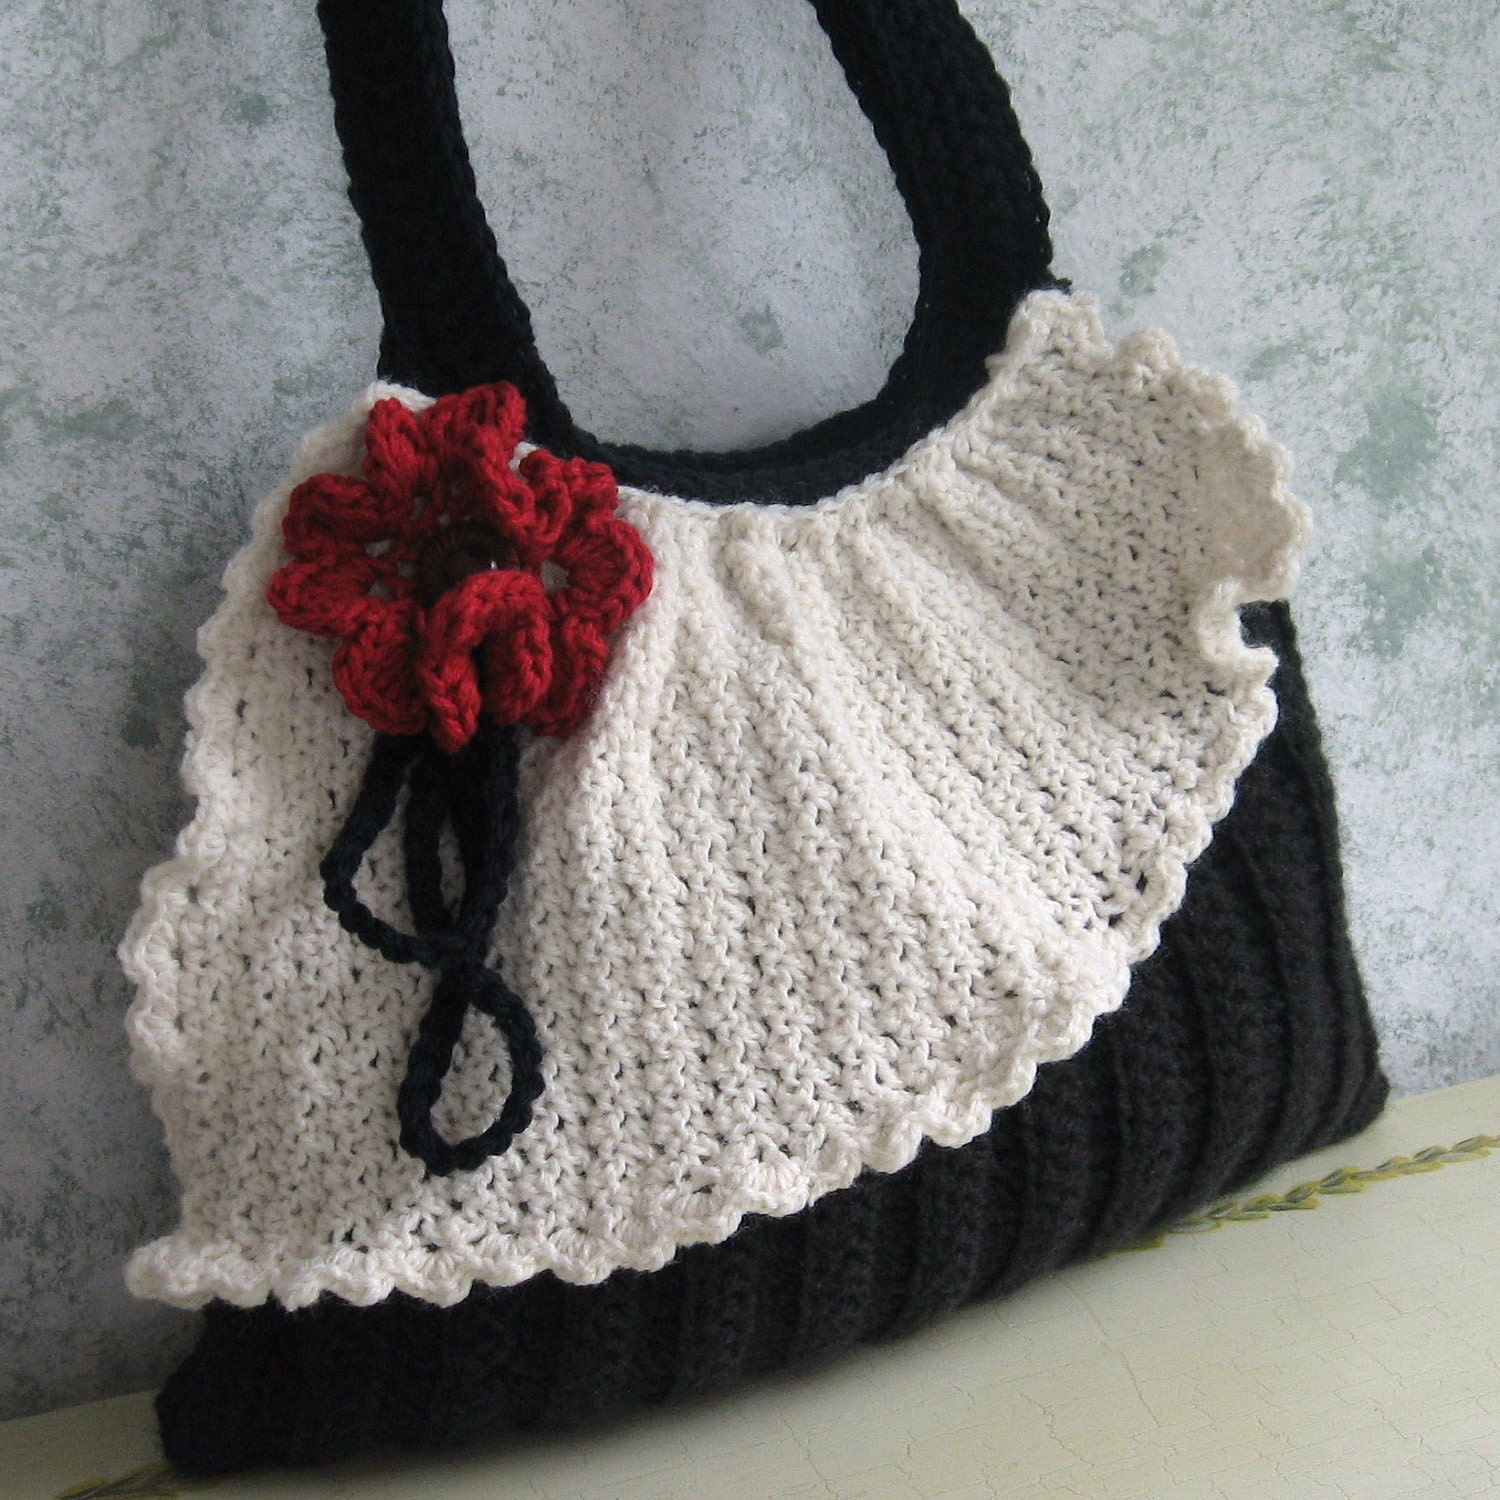 Crochet Bucket Bag Pattern : Crochet Purse Pattern Pleated Bag With Drape And by kalliedesigns